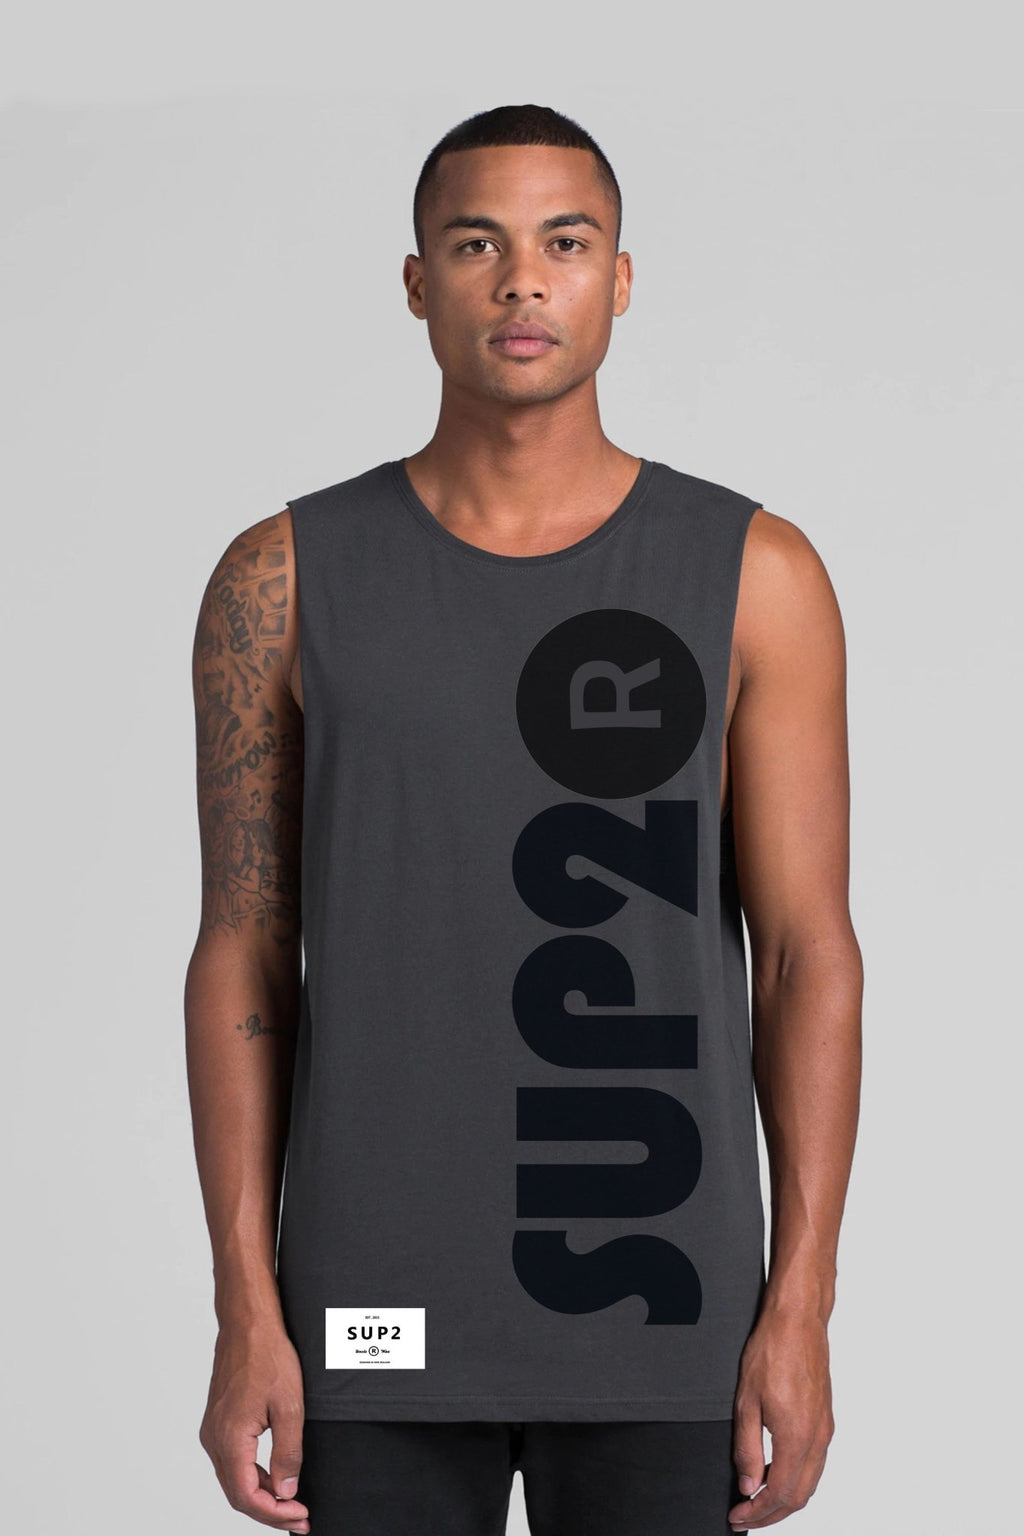 SUP2 'Big Timer' Sleeveless tee - SUP2